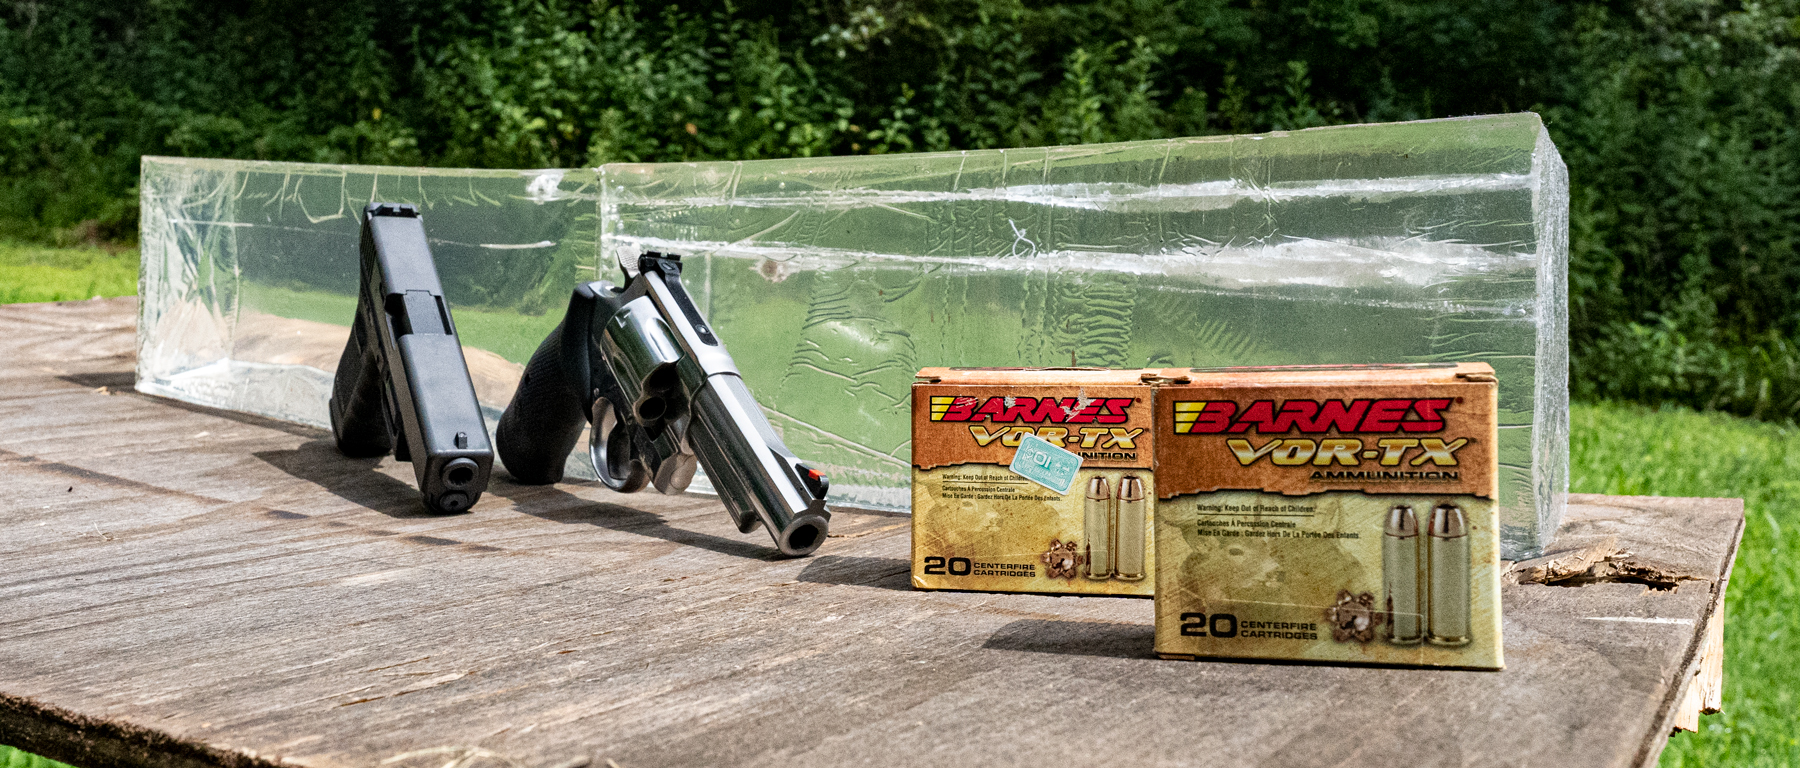 Comparing 10mm and 44 magnum ammo and guns with ballistic gel at a shooting range